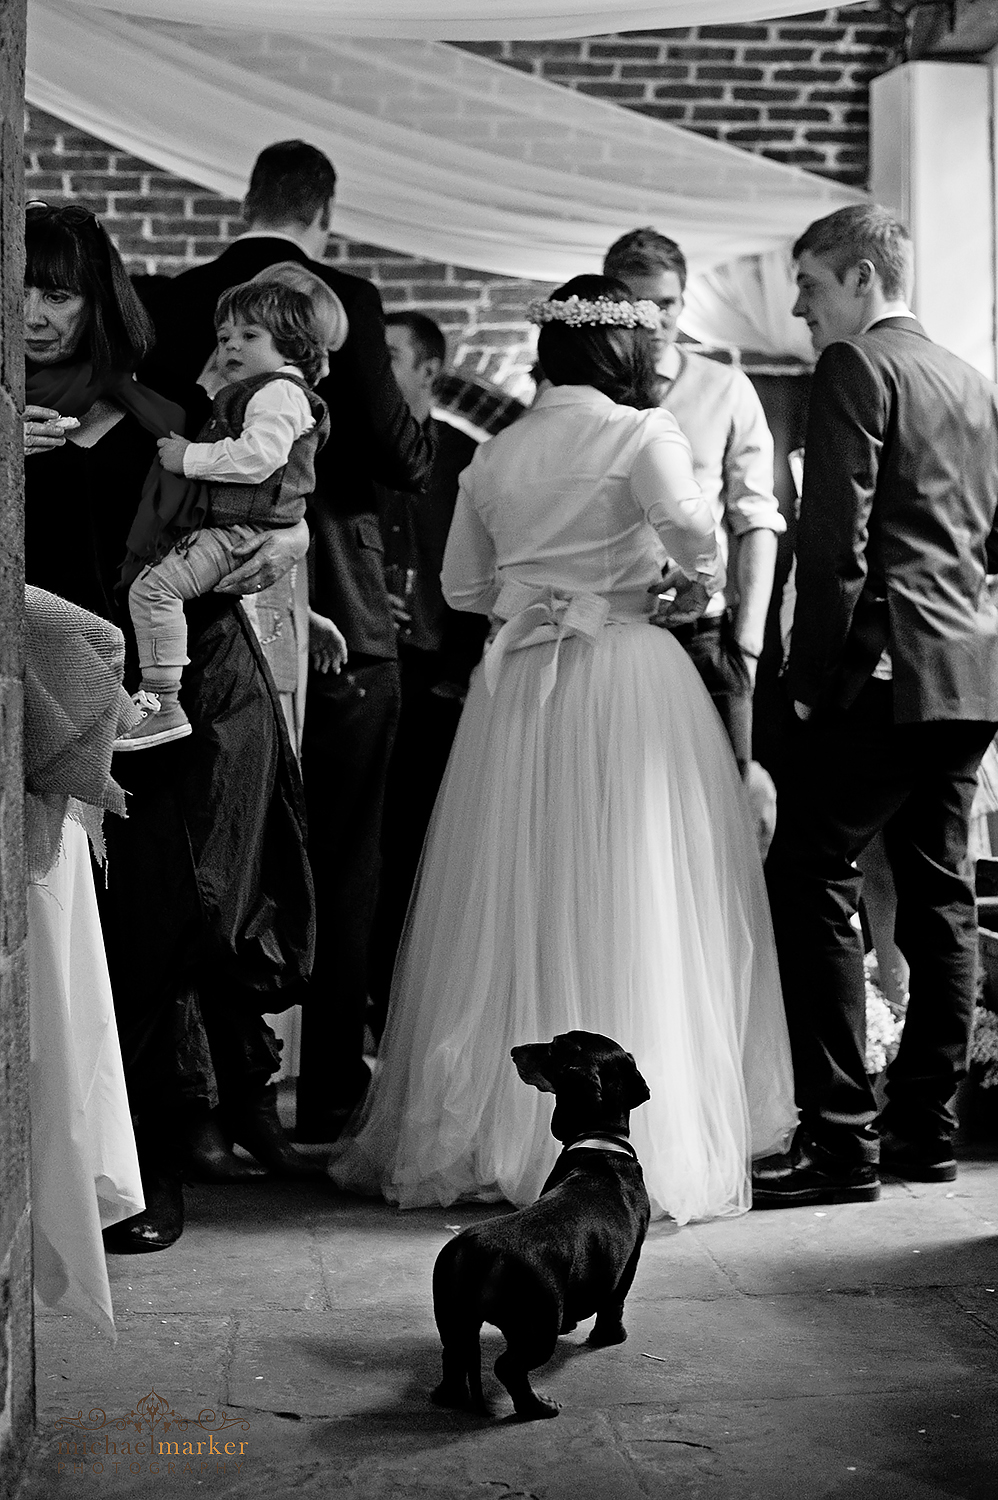 daschund at wedding reception